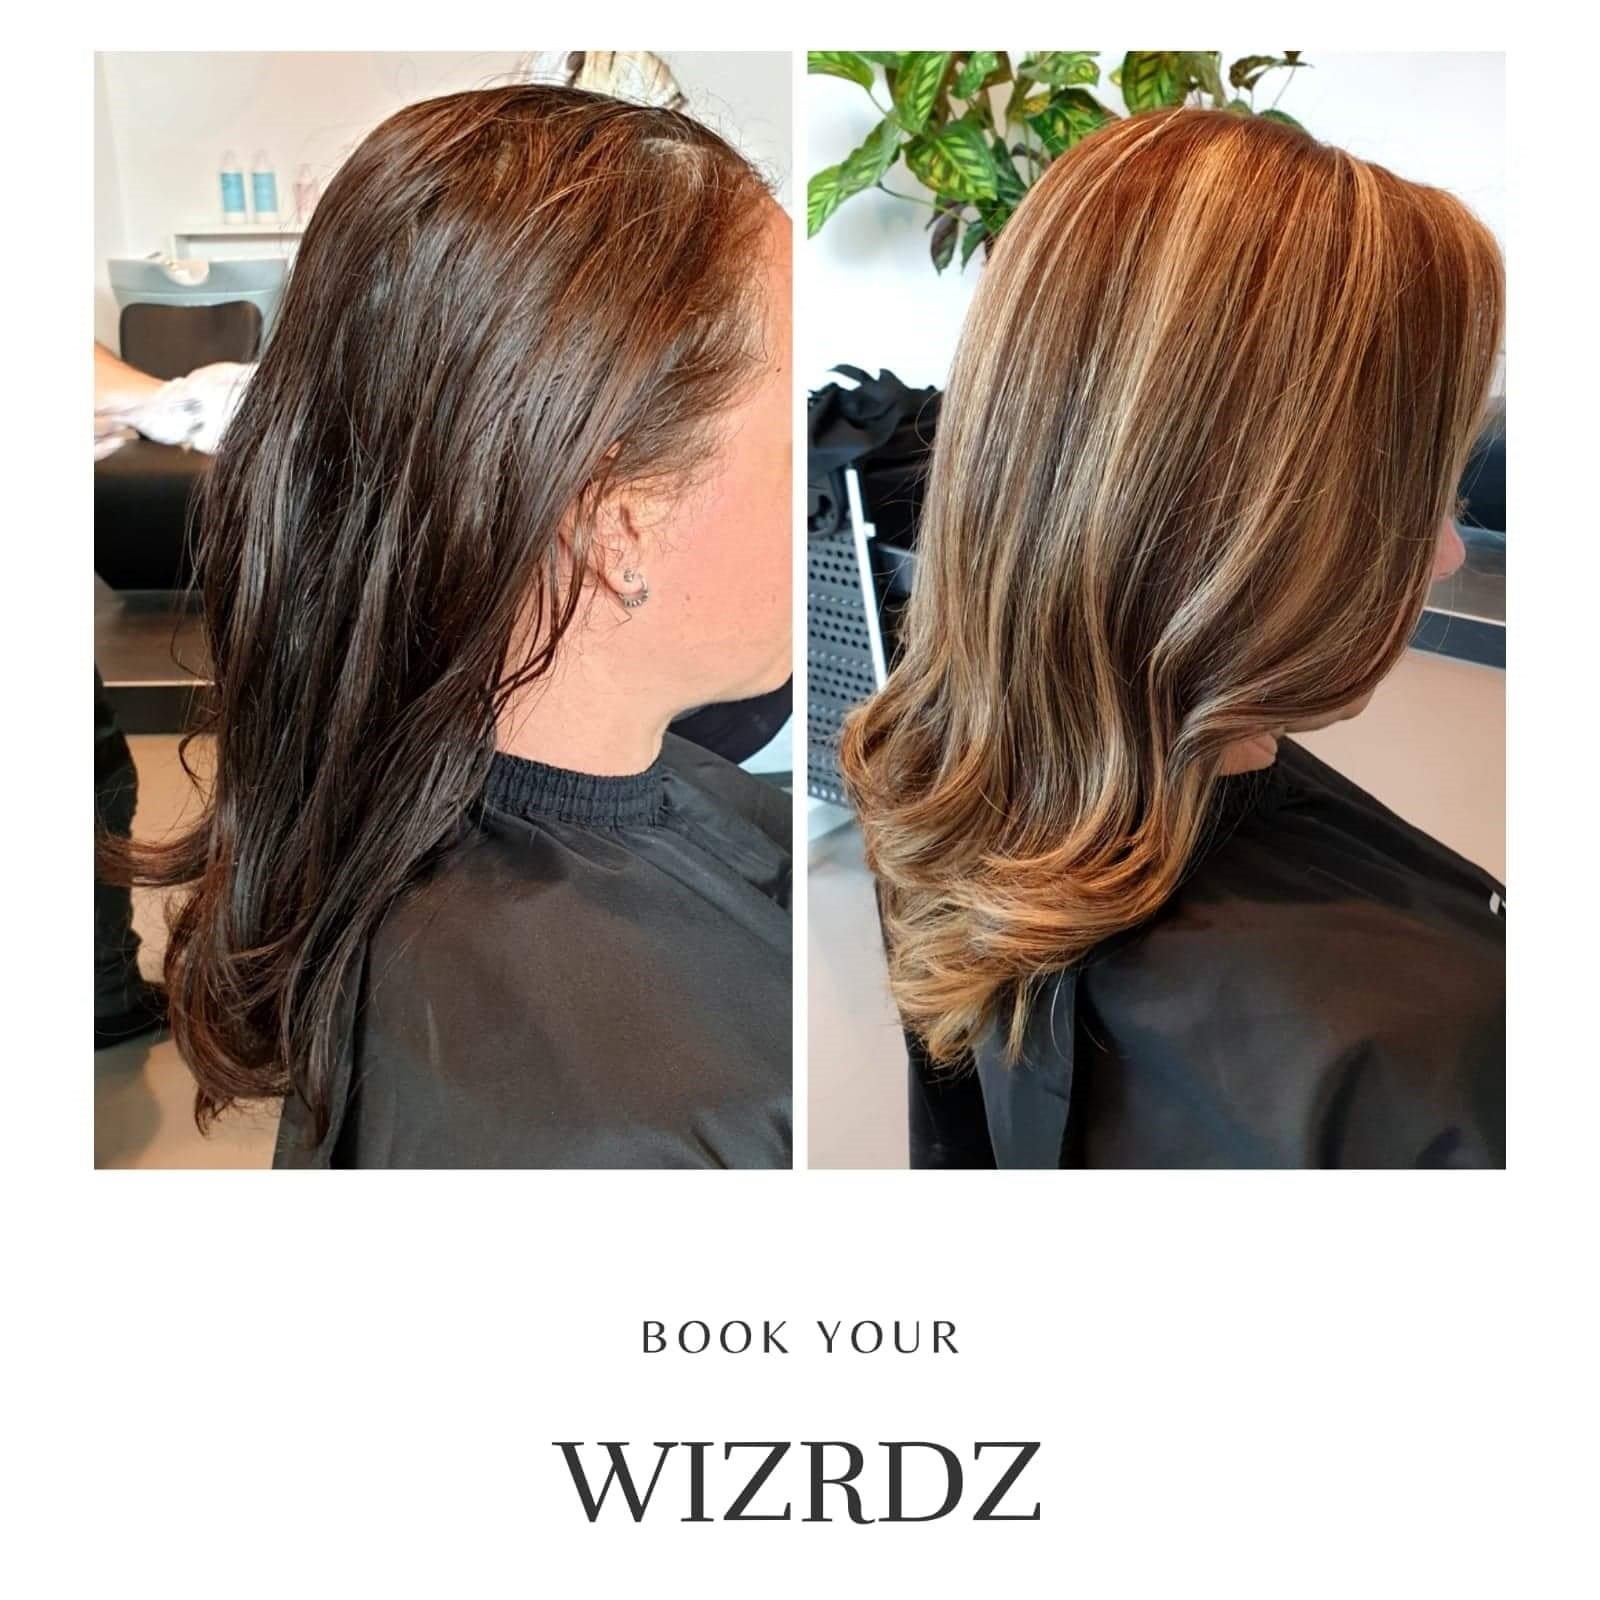 Haar make over van salon Wizrdz